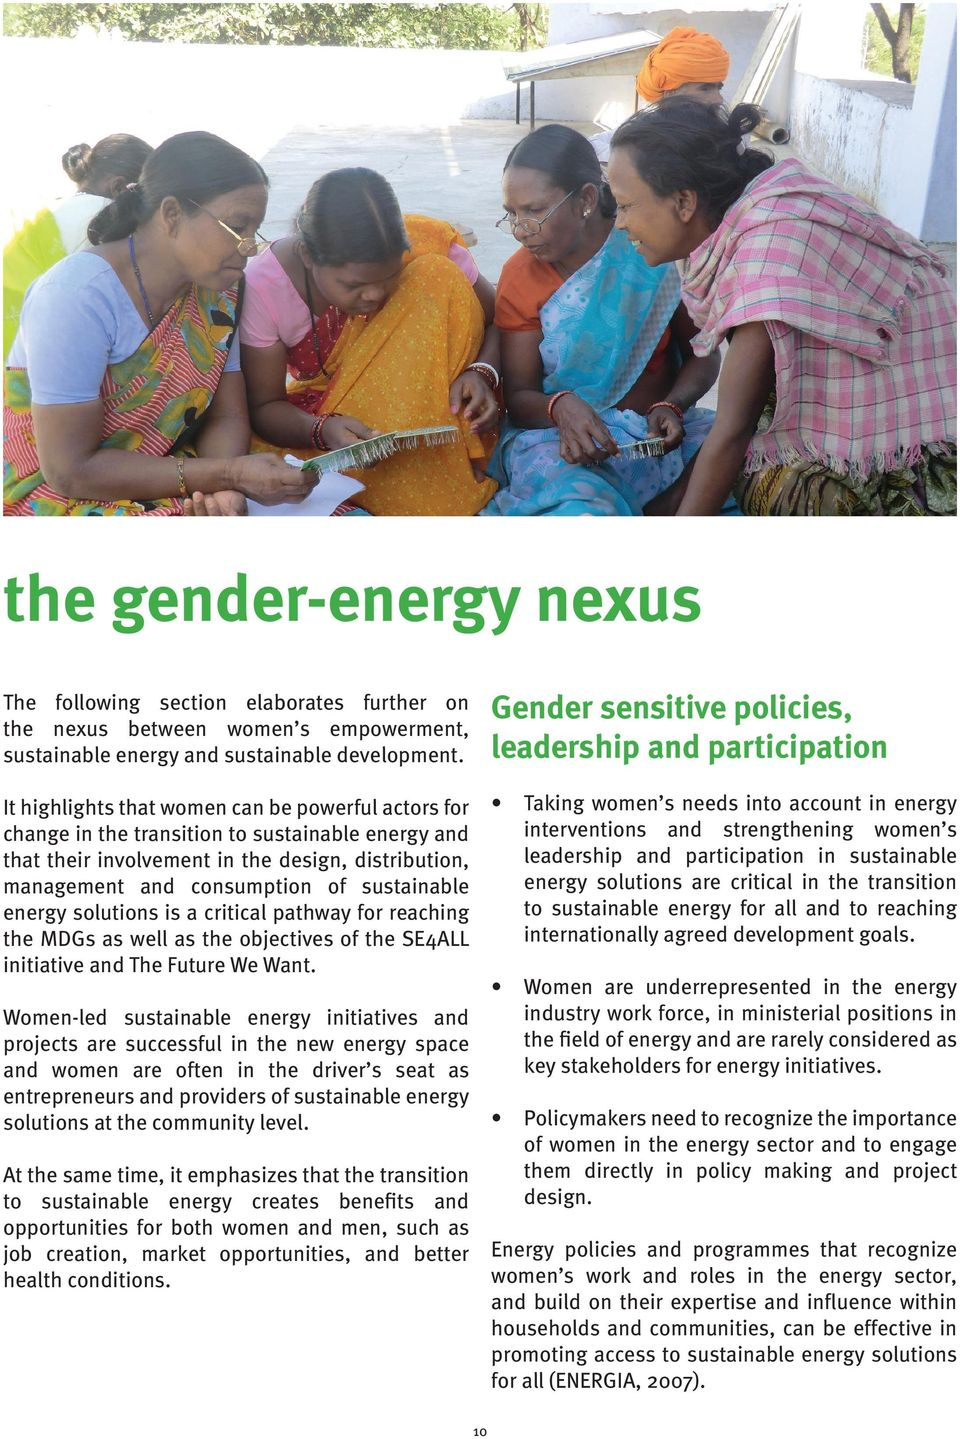 promised to provide more gender-balanced development in the energy sector.